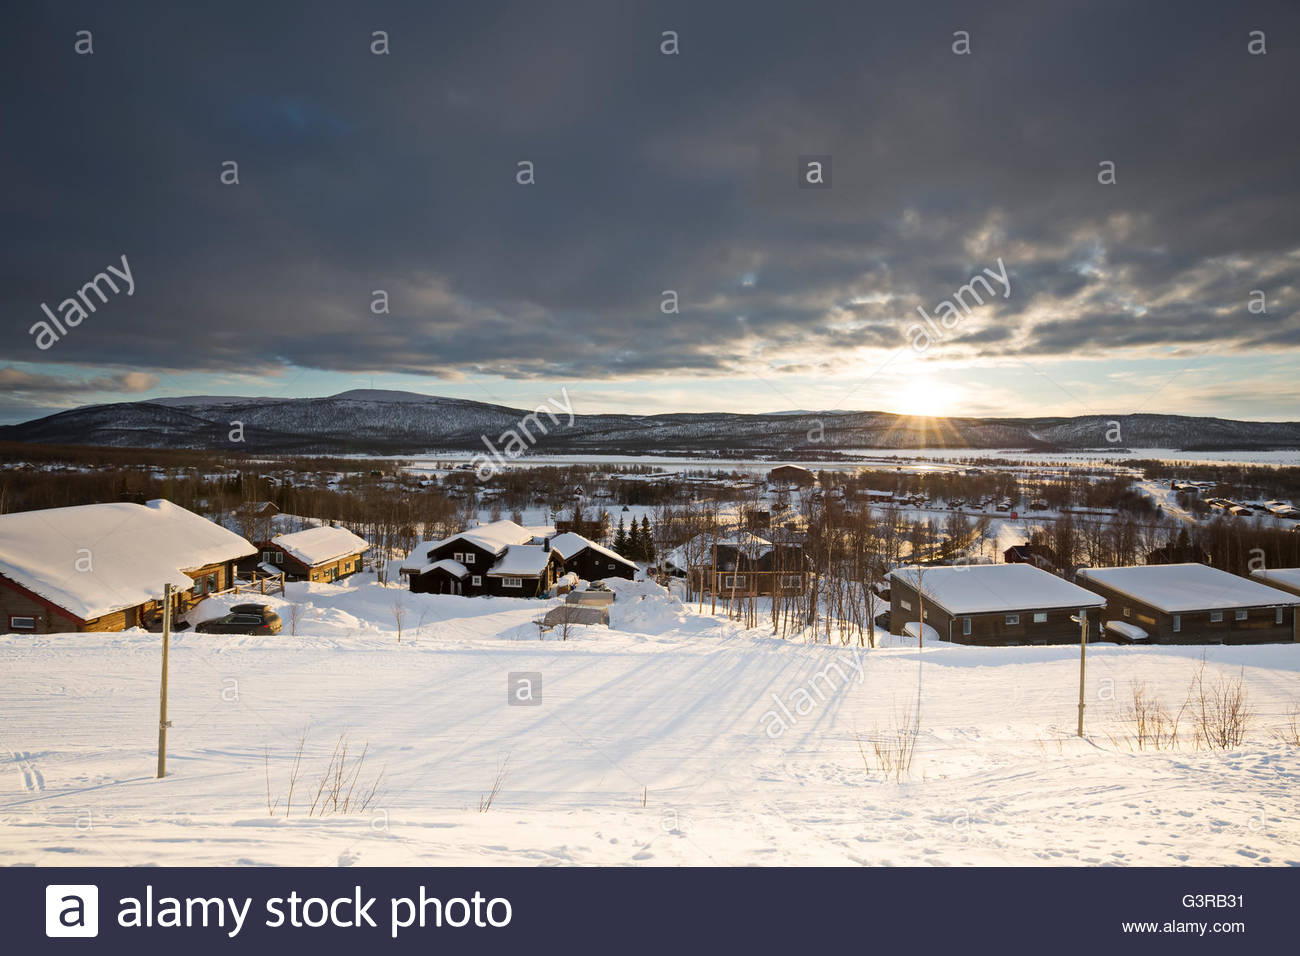 Sweden, Vasterbotten, Hemavan, Wooden houses at ski resort at sunset - Stock Image